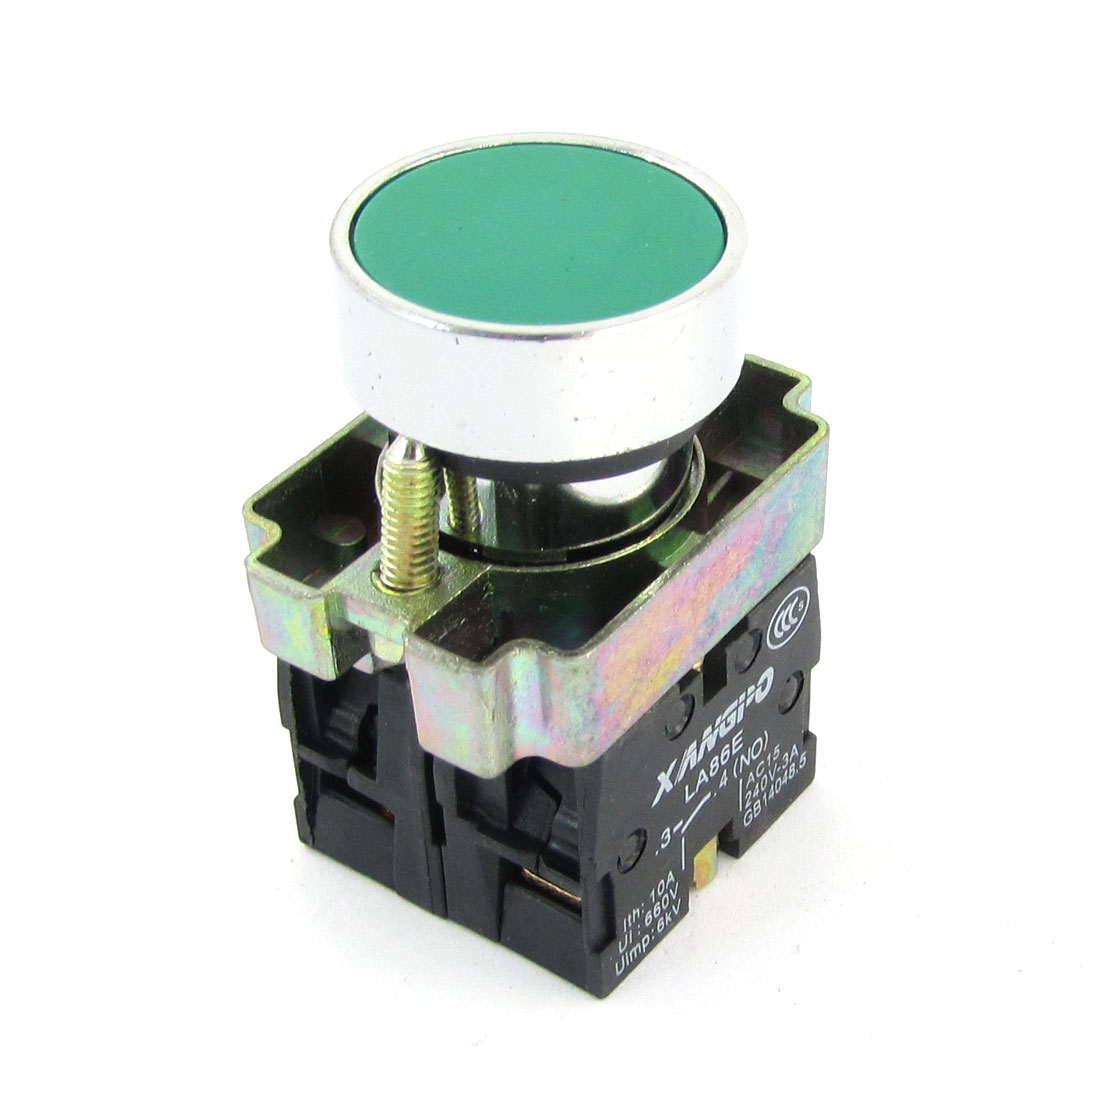 AC 240V 3A 1NO 1NC DPST Momentary Green Flat Round Push Button Switch